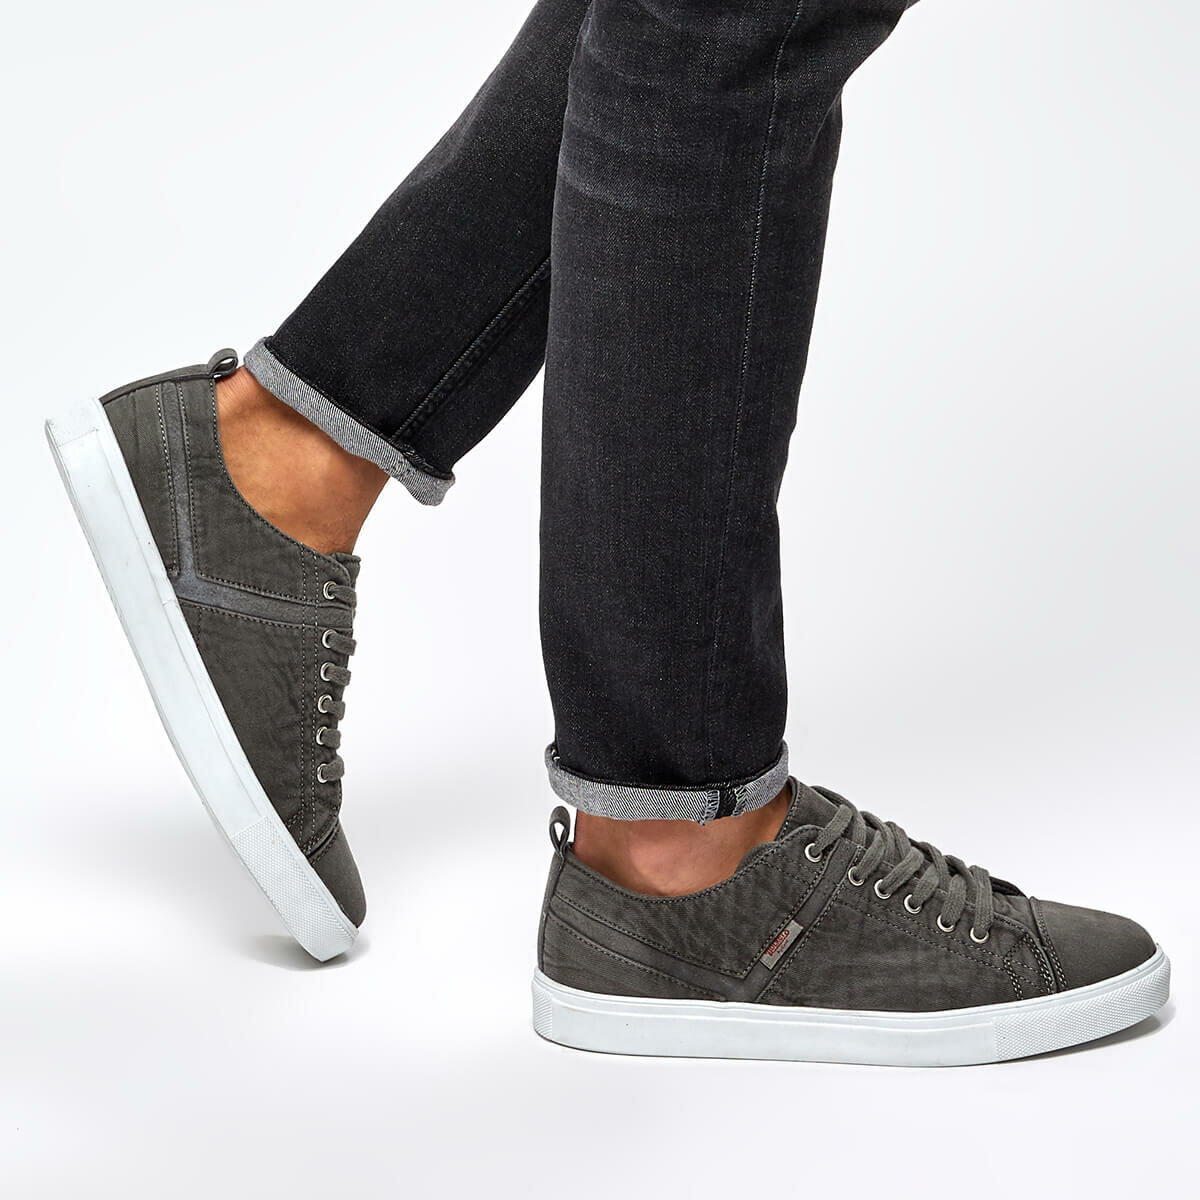 FLO 224920 Black Male Sneaker By Dockers The Gerle